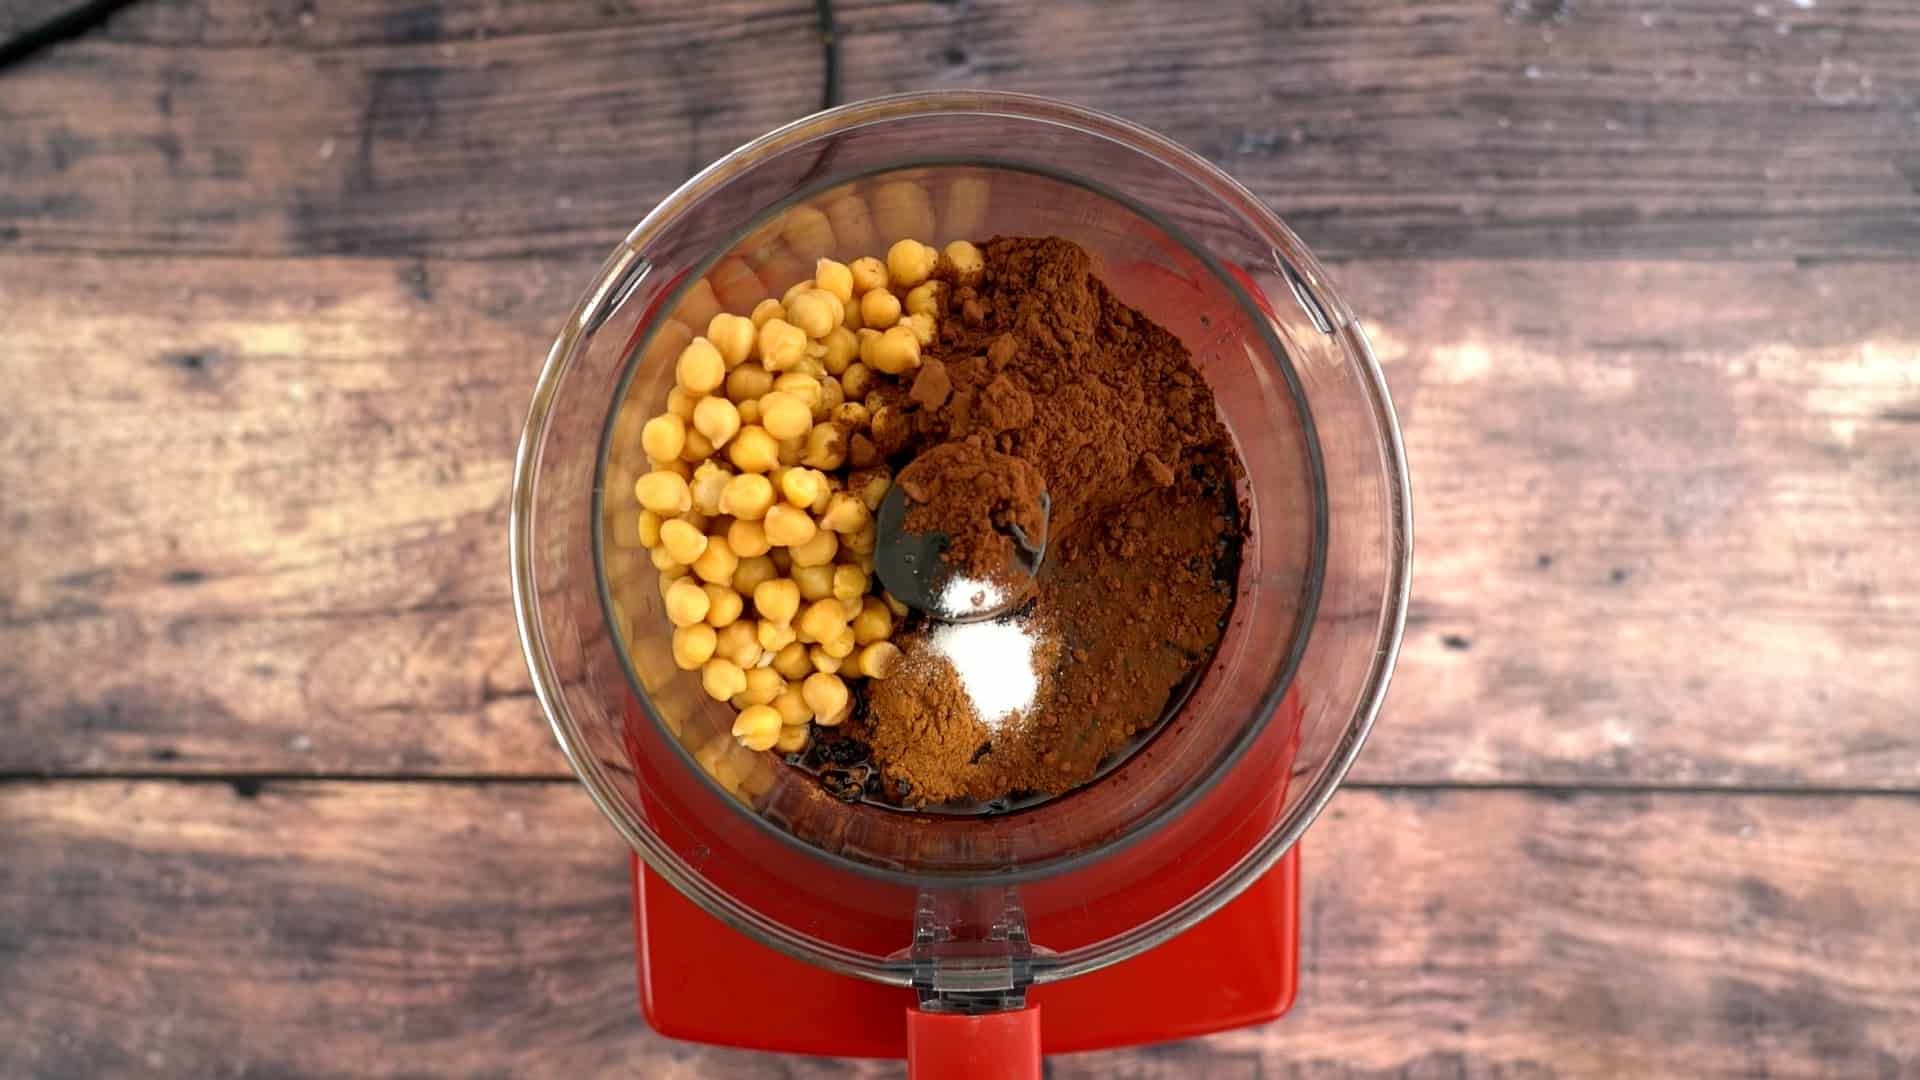 Chickpeas, cocoa, maple syrup in a food processor.